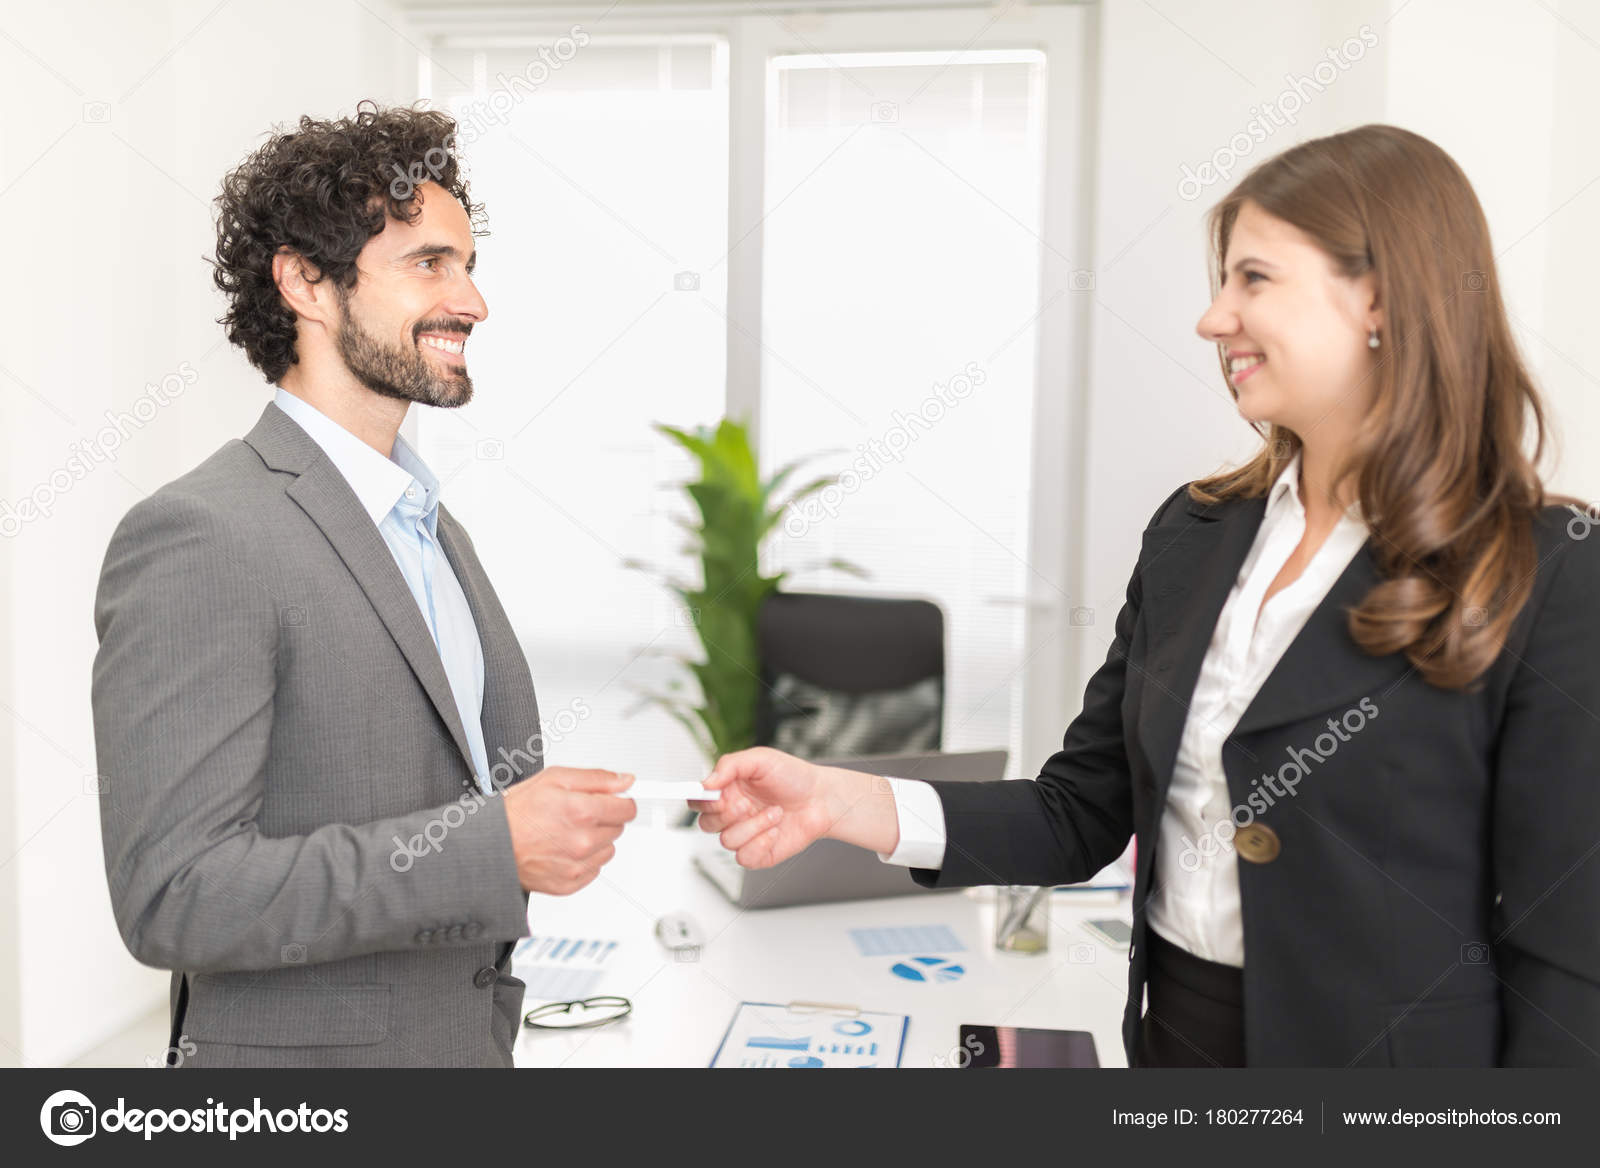 People exchanging business cards stock photo minervastock 180277264 people exchanging business cards stock photo colourmoves